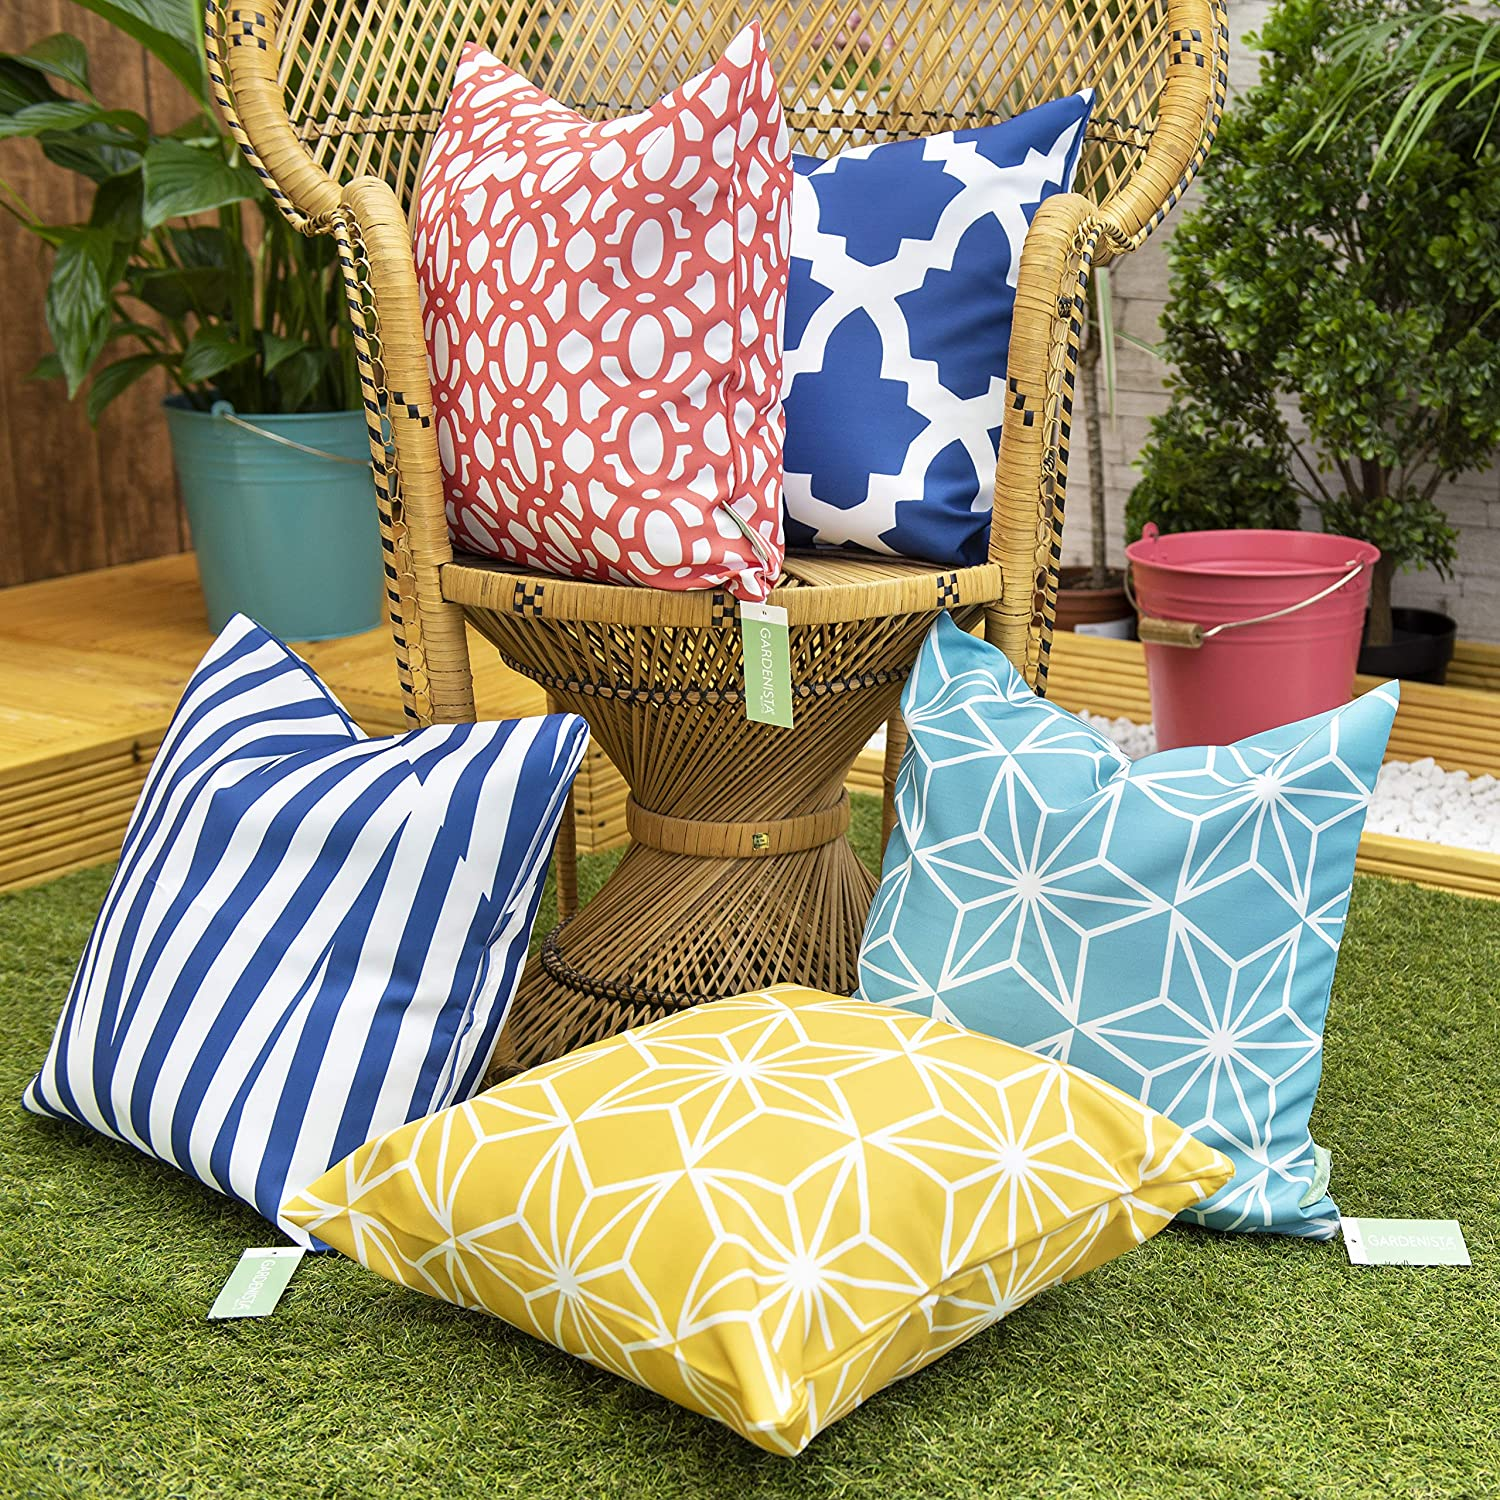 Gardenista Decorative Garden Cushion Cover Set Waterproof Outdoor Cushion Covers Soft Water Resistant Fabric For Durability Geometric Tile Collection 5 Pieces Amazon Co Uk Garden Outdoors